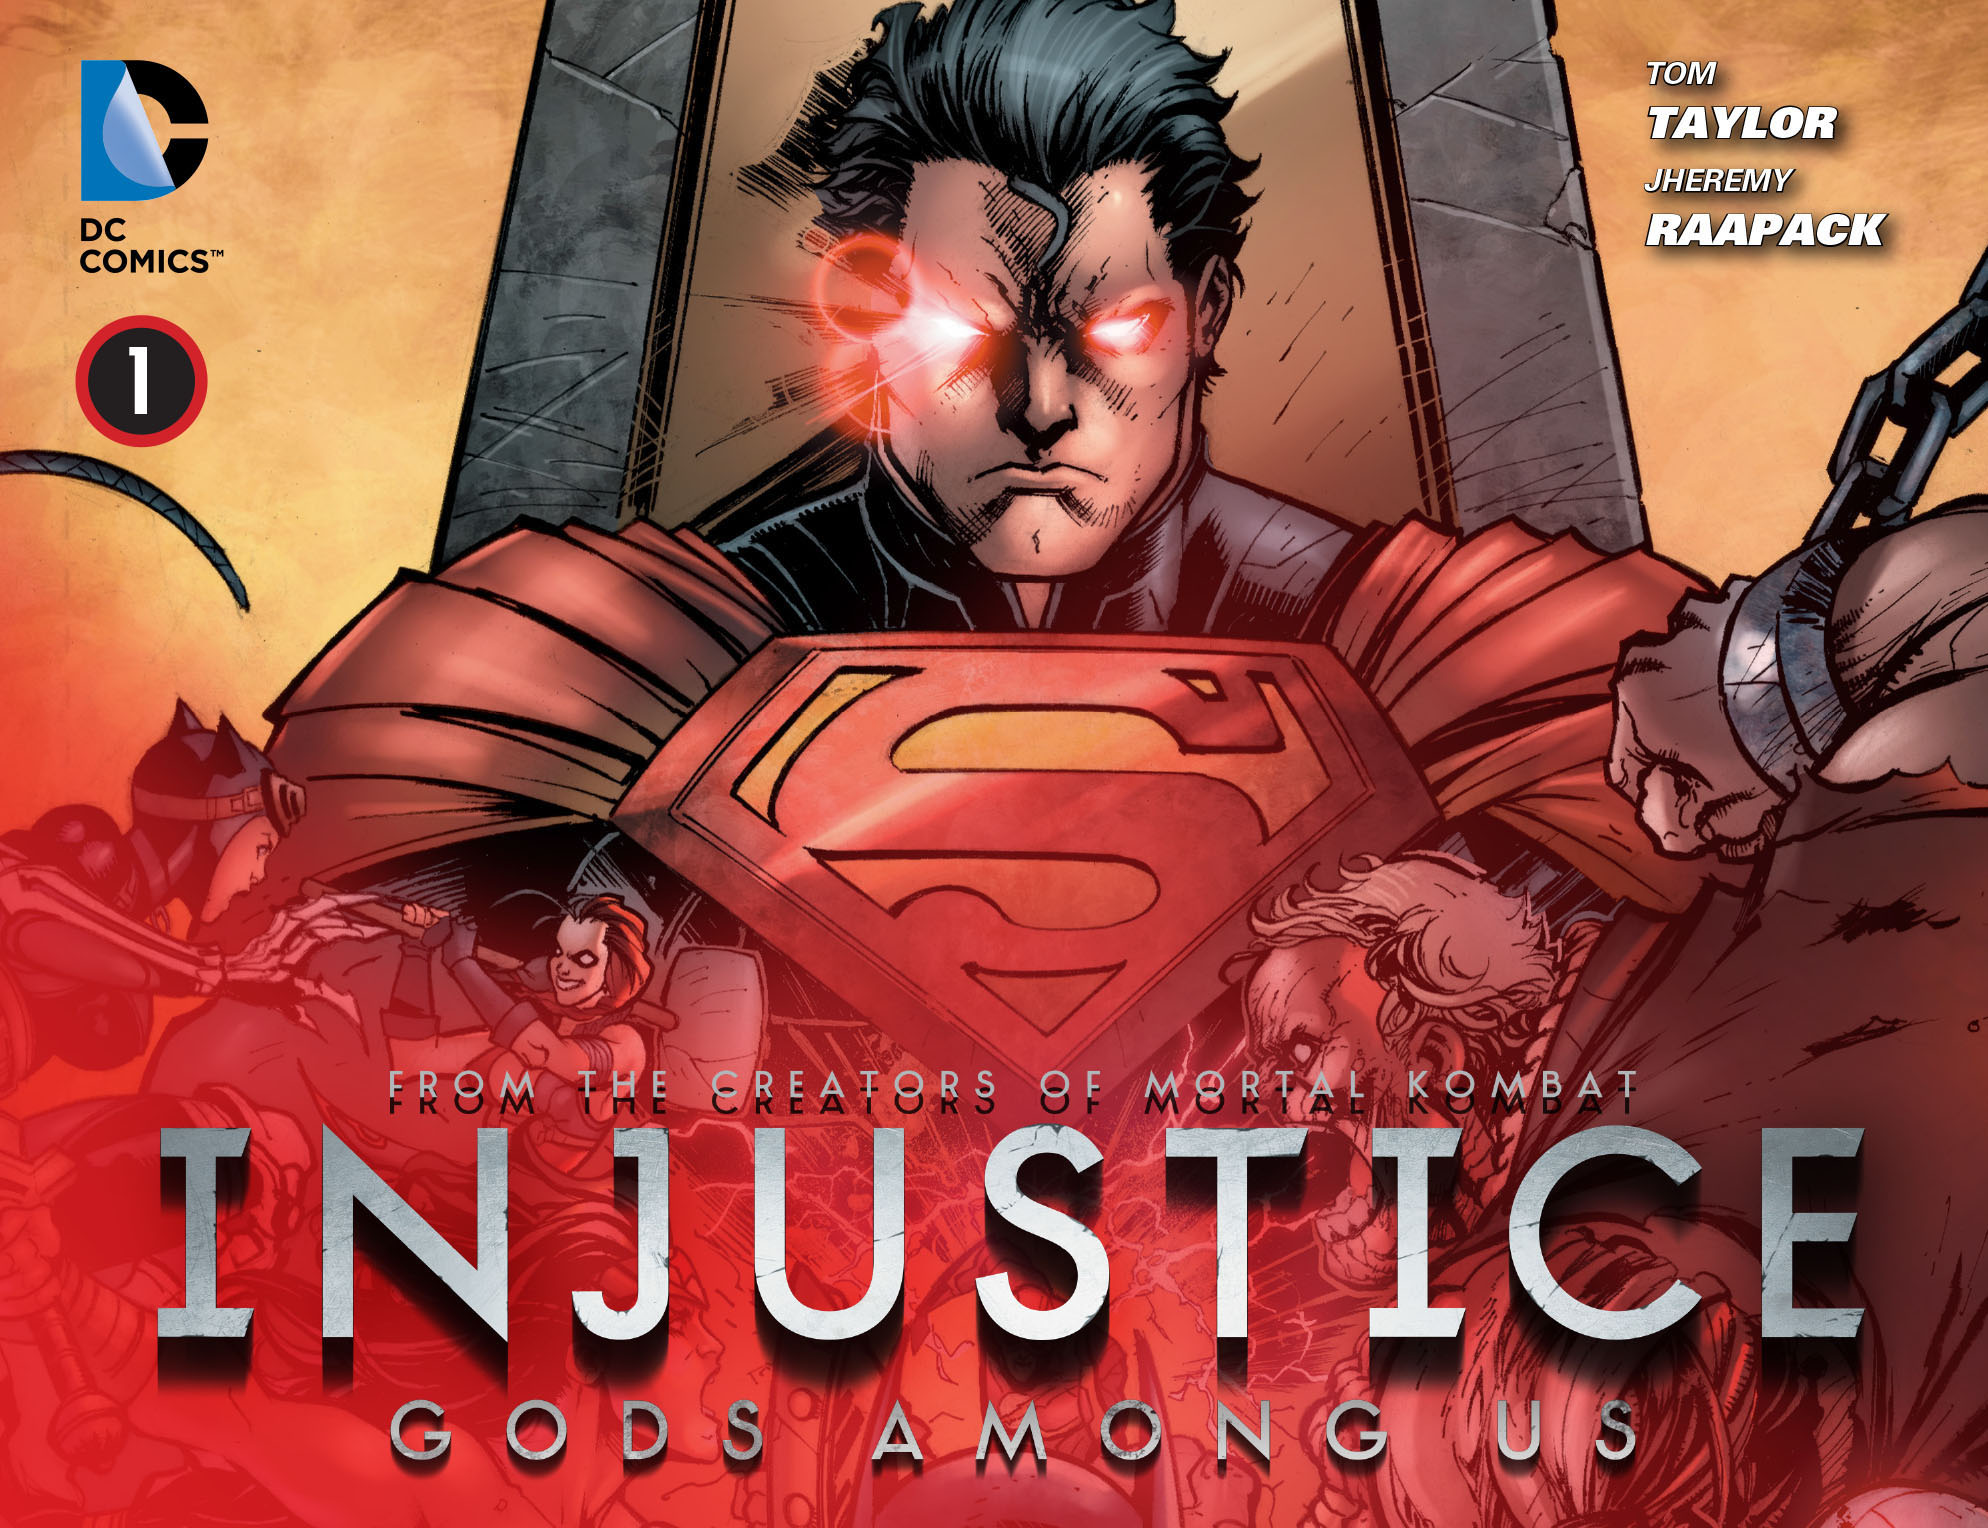 http://www.dcplanet.fr/wp-content/uploads/2013/01/Injustice_Gods_Among_Us_1_1.jpg